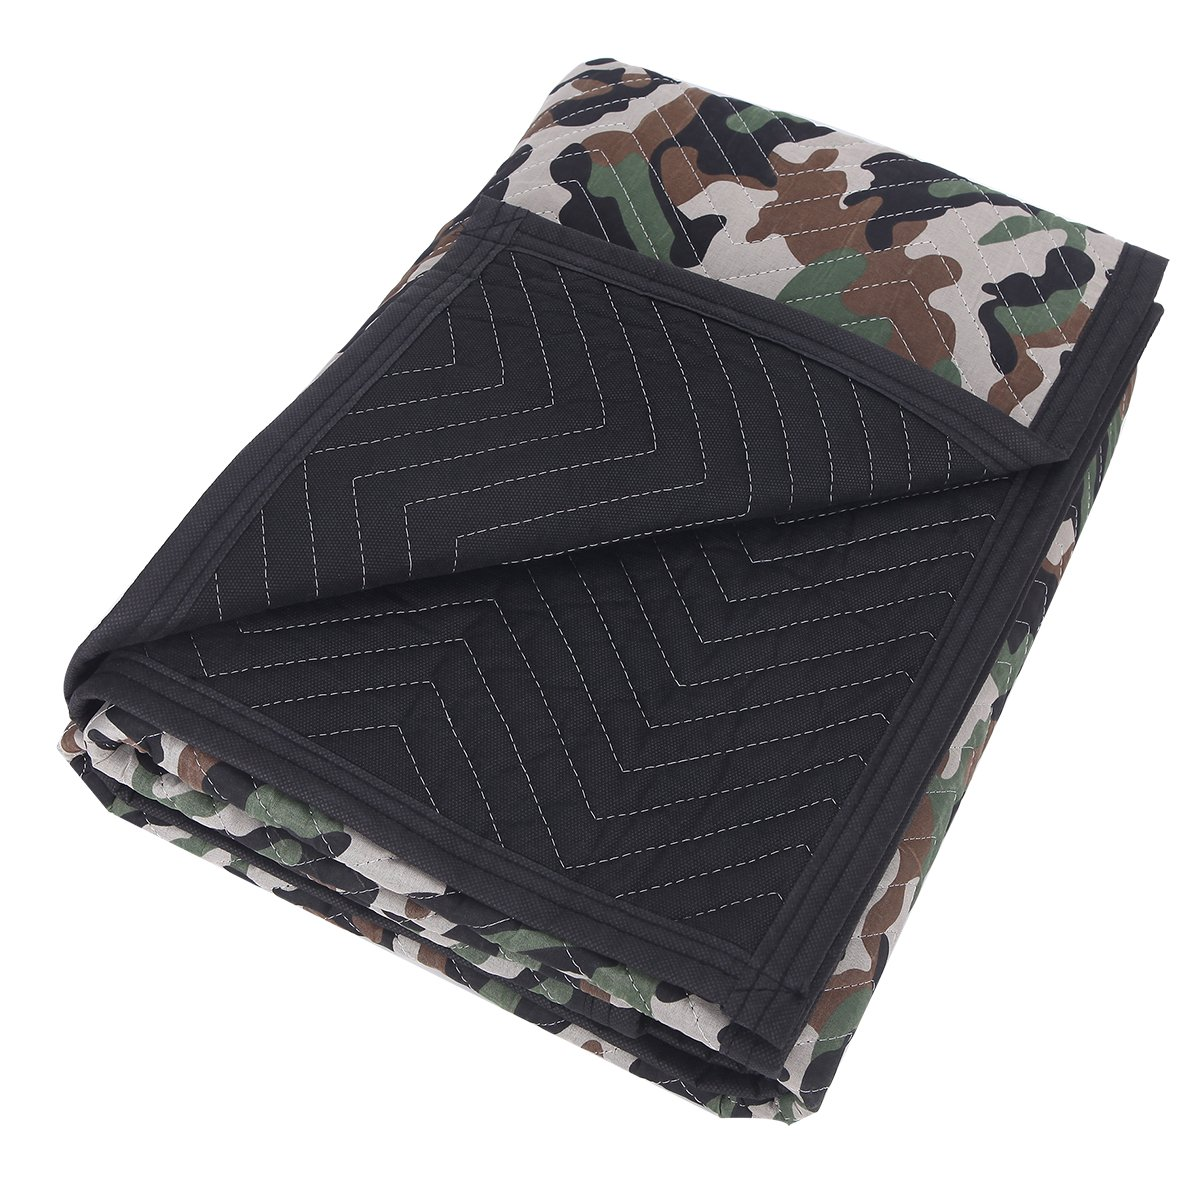 SOMIDE Luxury Camouflage Moving Blankets, Ultra Thick, Double Batting, Colorfast, 72'' x 80'', 5.8 Lbs/pc, Multi-Porpose for Pet Supplies, Sound Barrier, Hunting and Outdoor. by SOMIDE (Image #2)